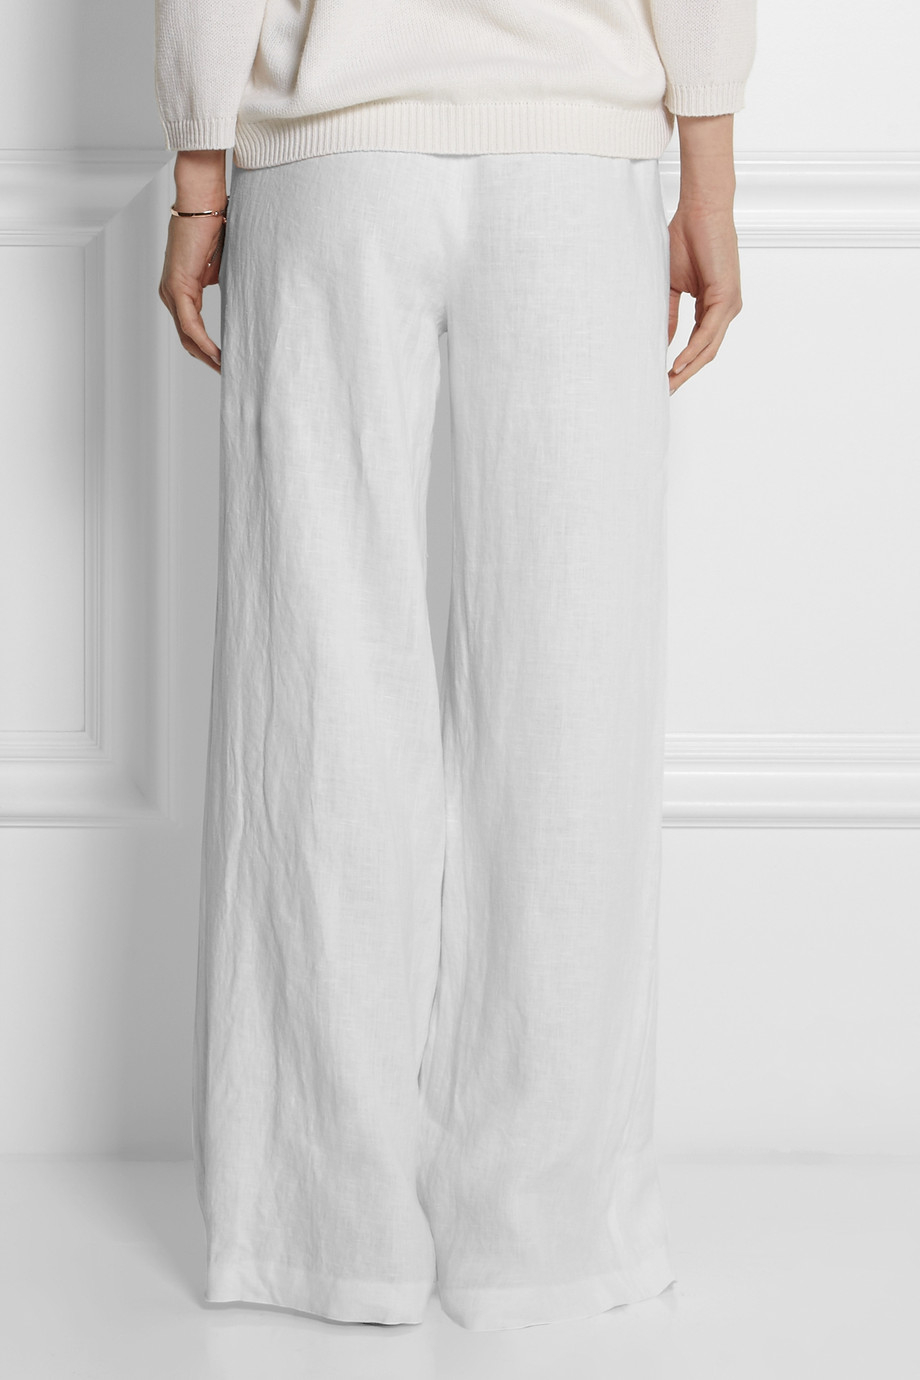 Michael michael kors Linen Wideleg Pants in White | Lyst